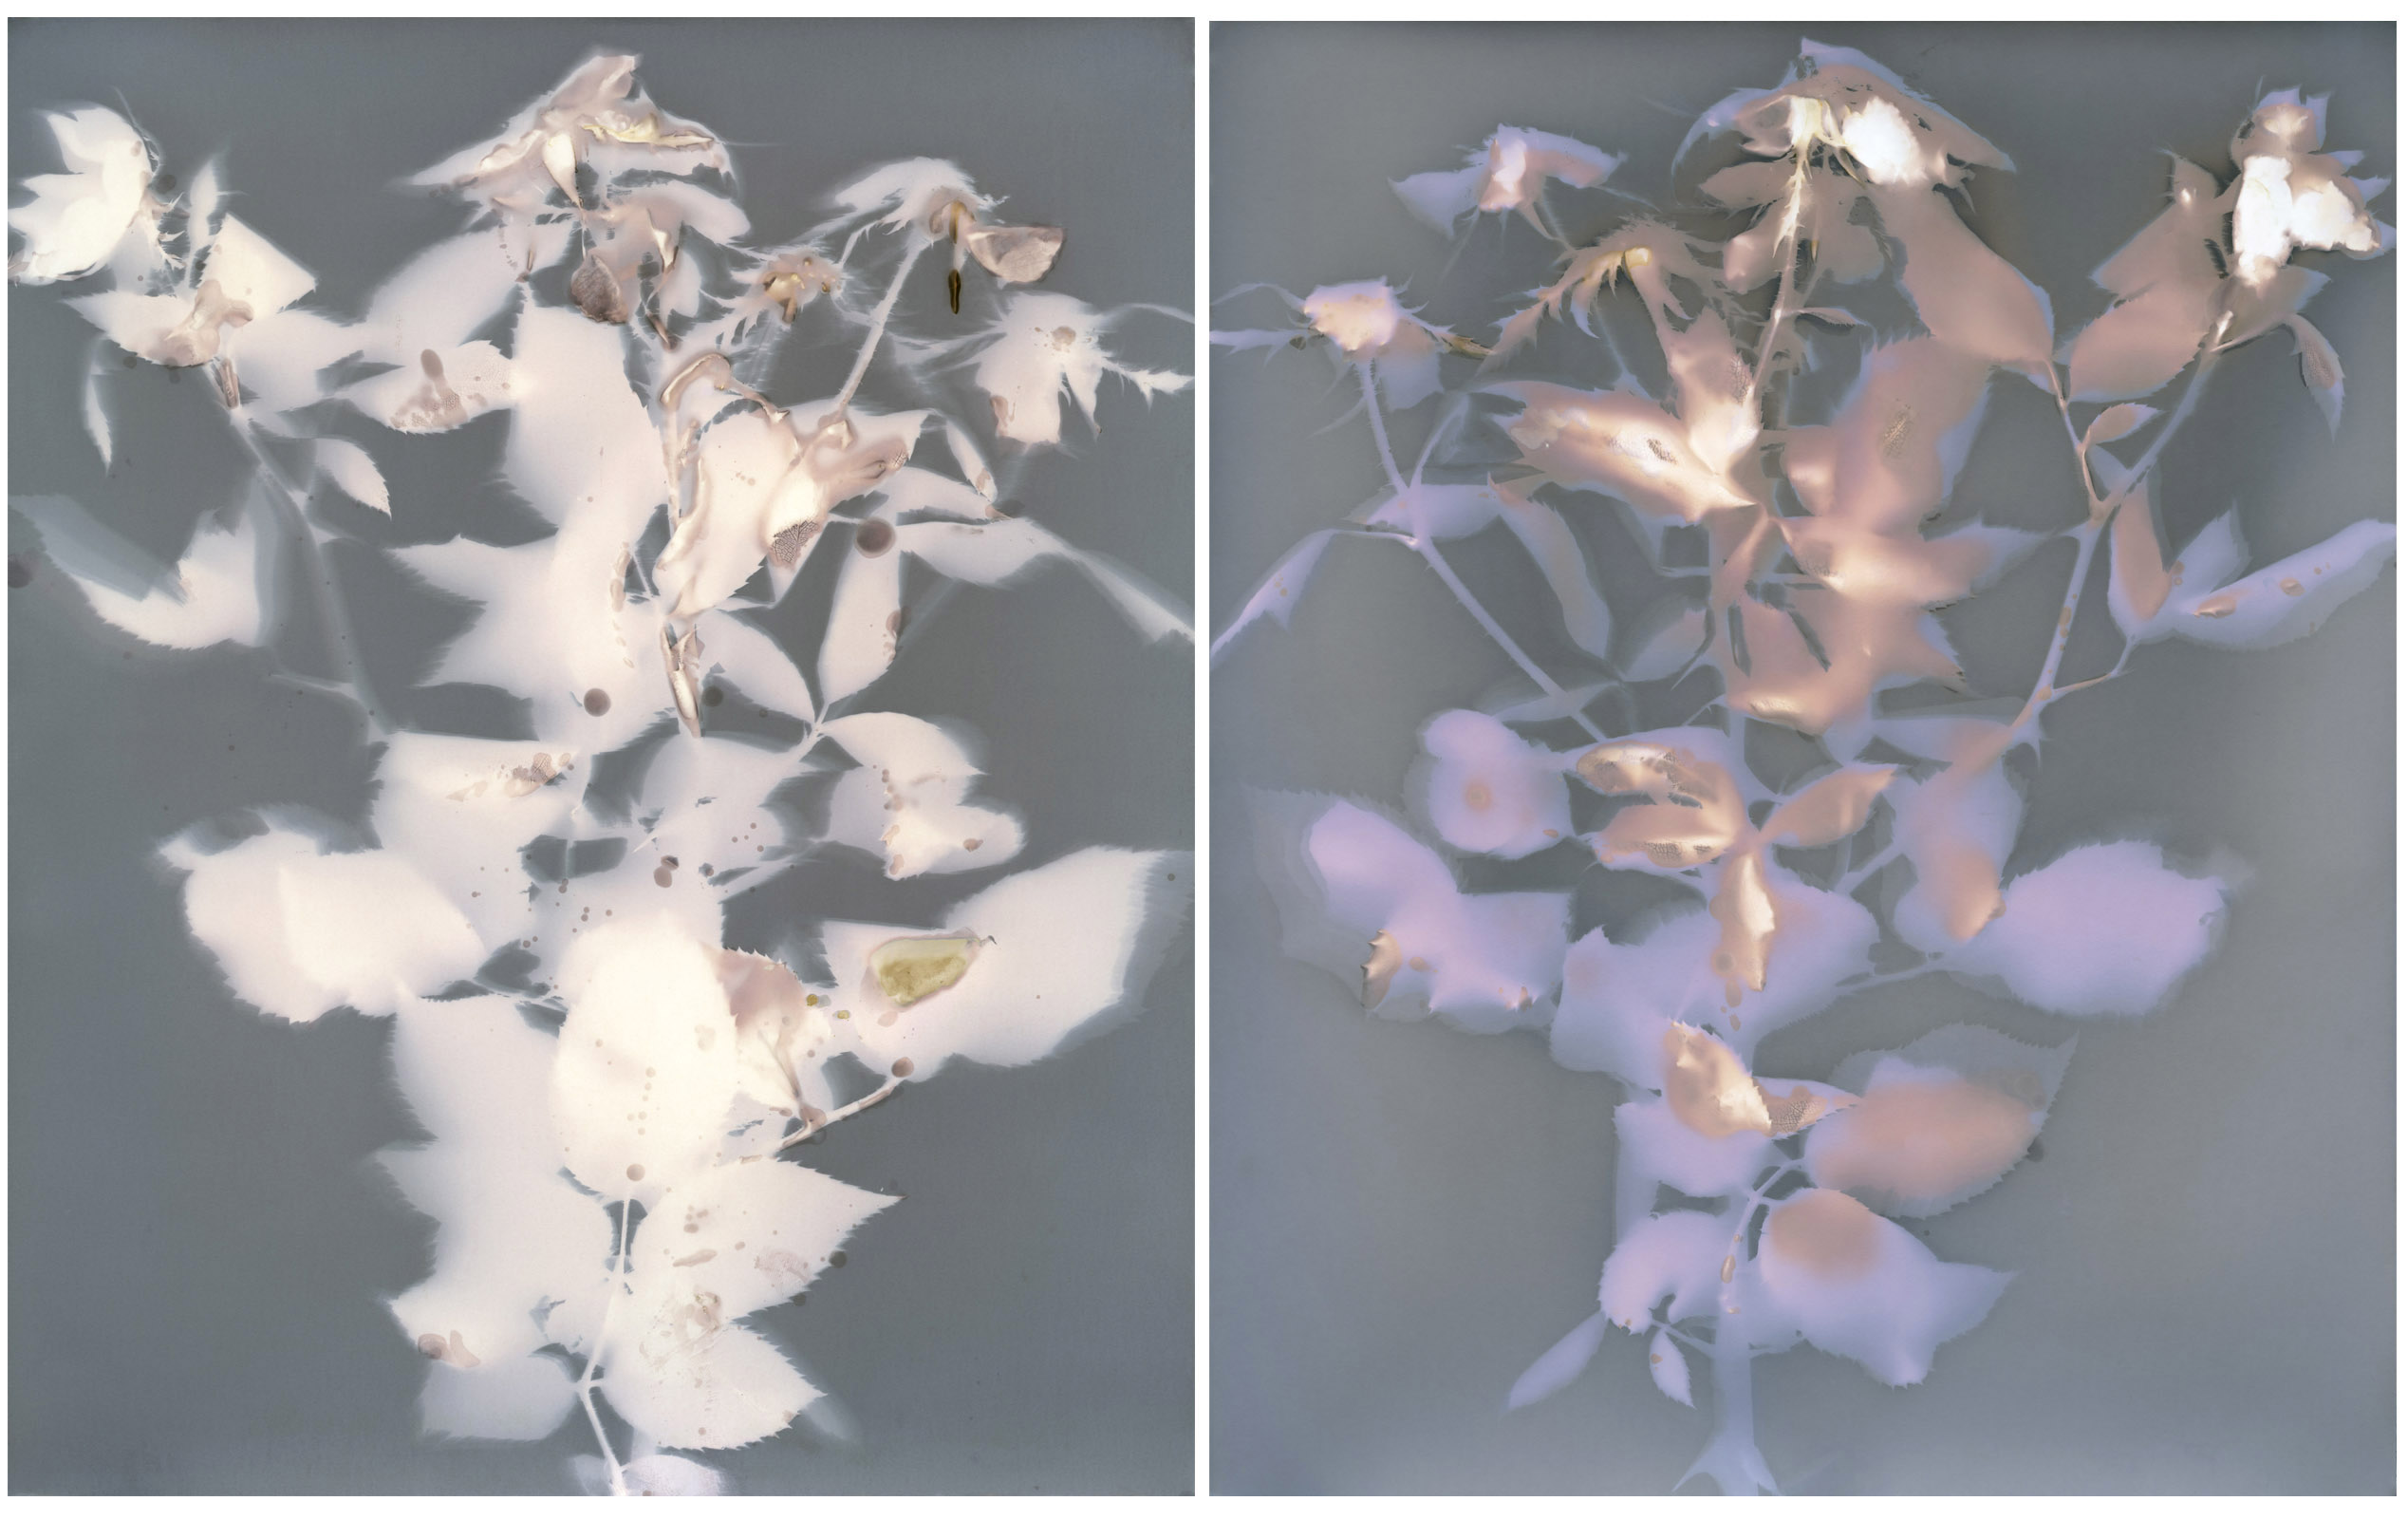 Lumen, flower, contemporary photography, light, sublime, beautiful, nature, tree